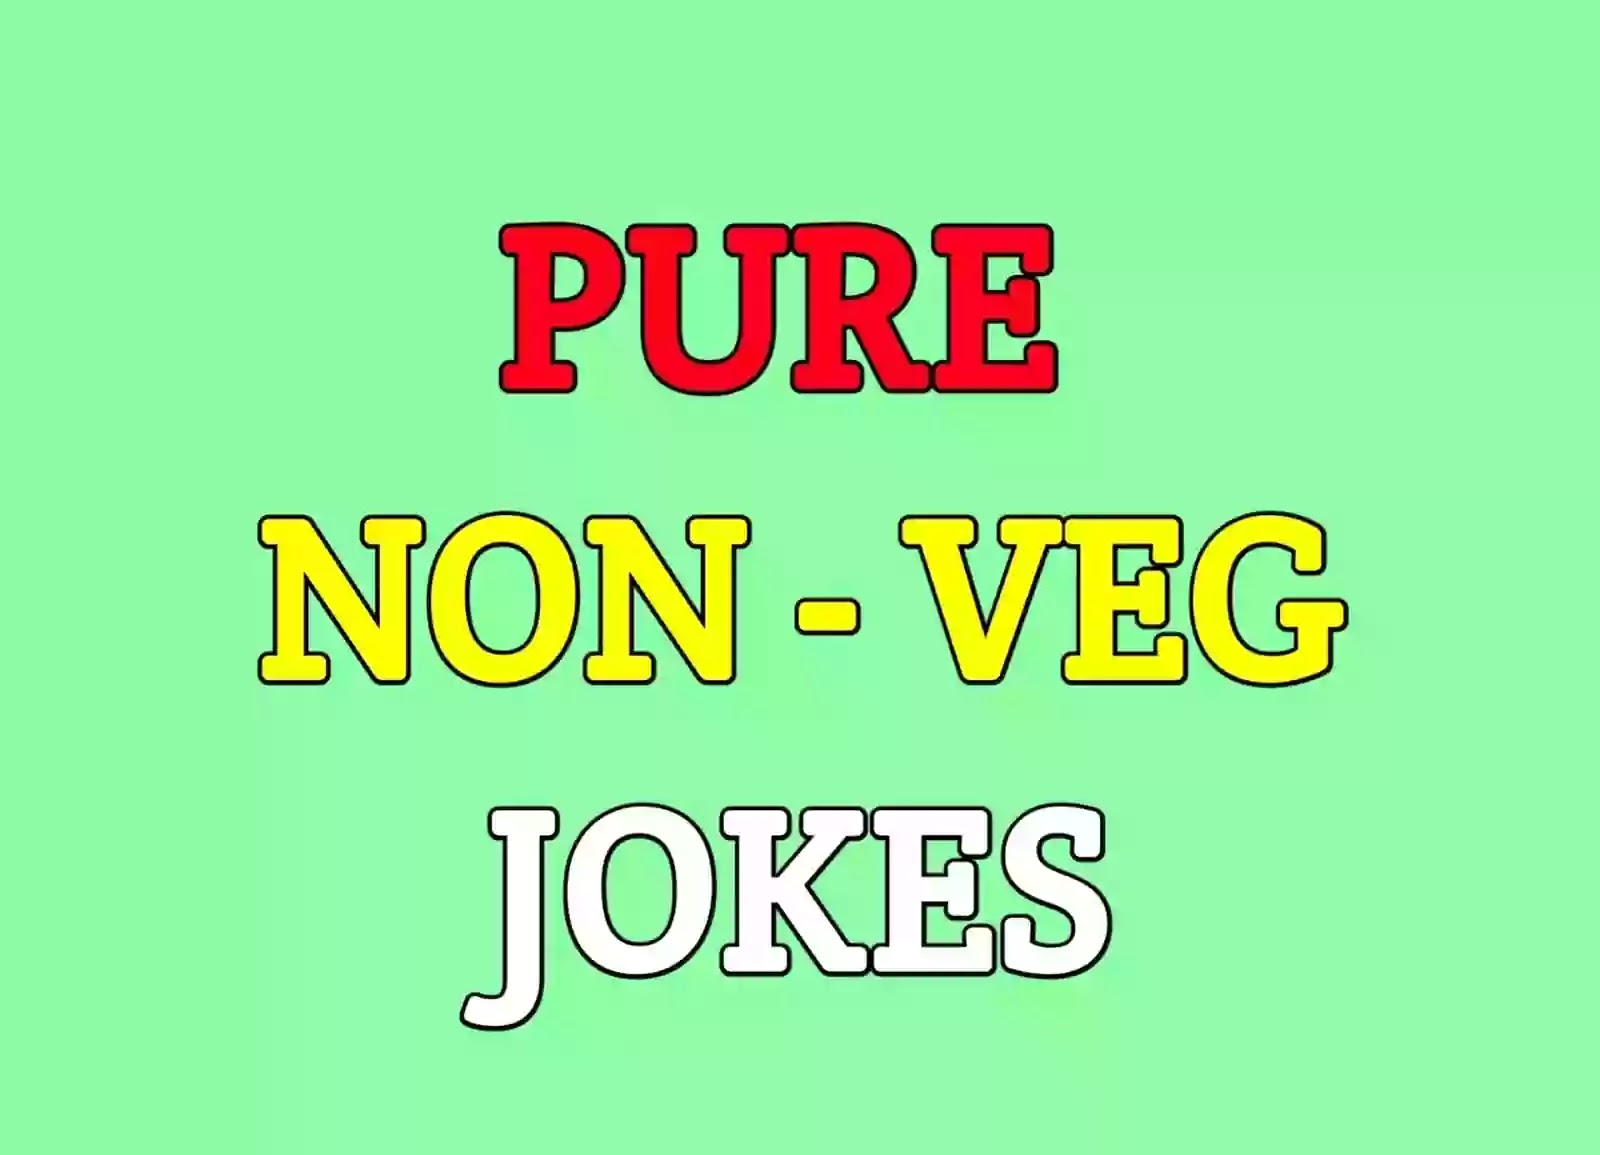 Pure Non Veg Jokes for whatsapp with images